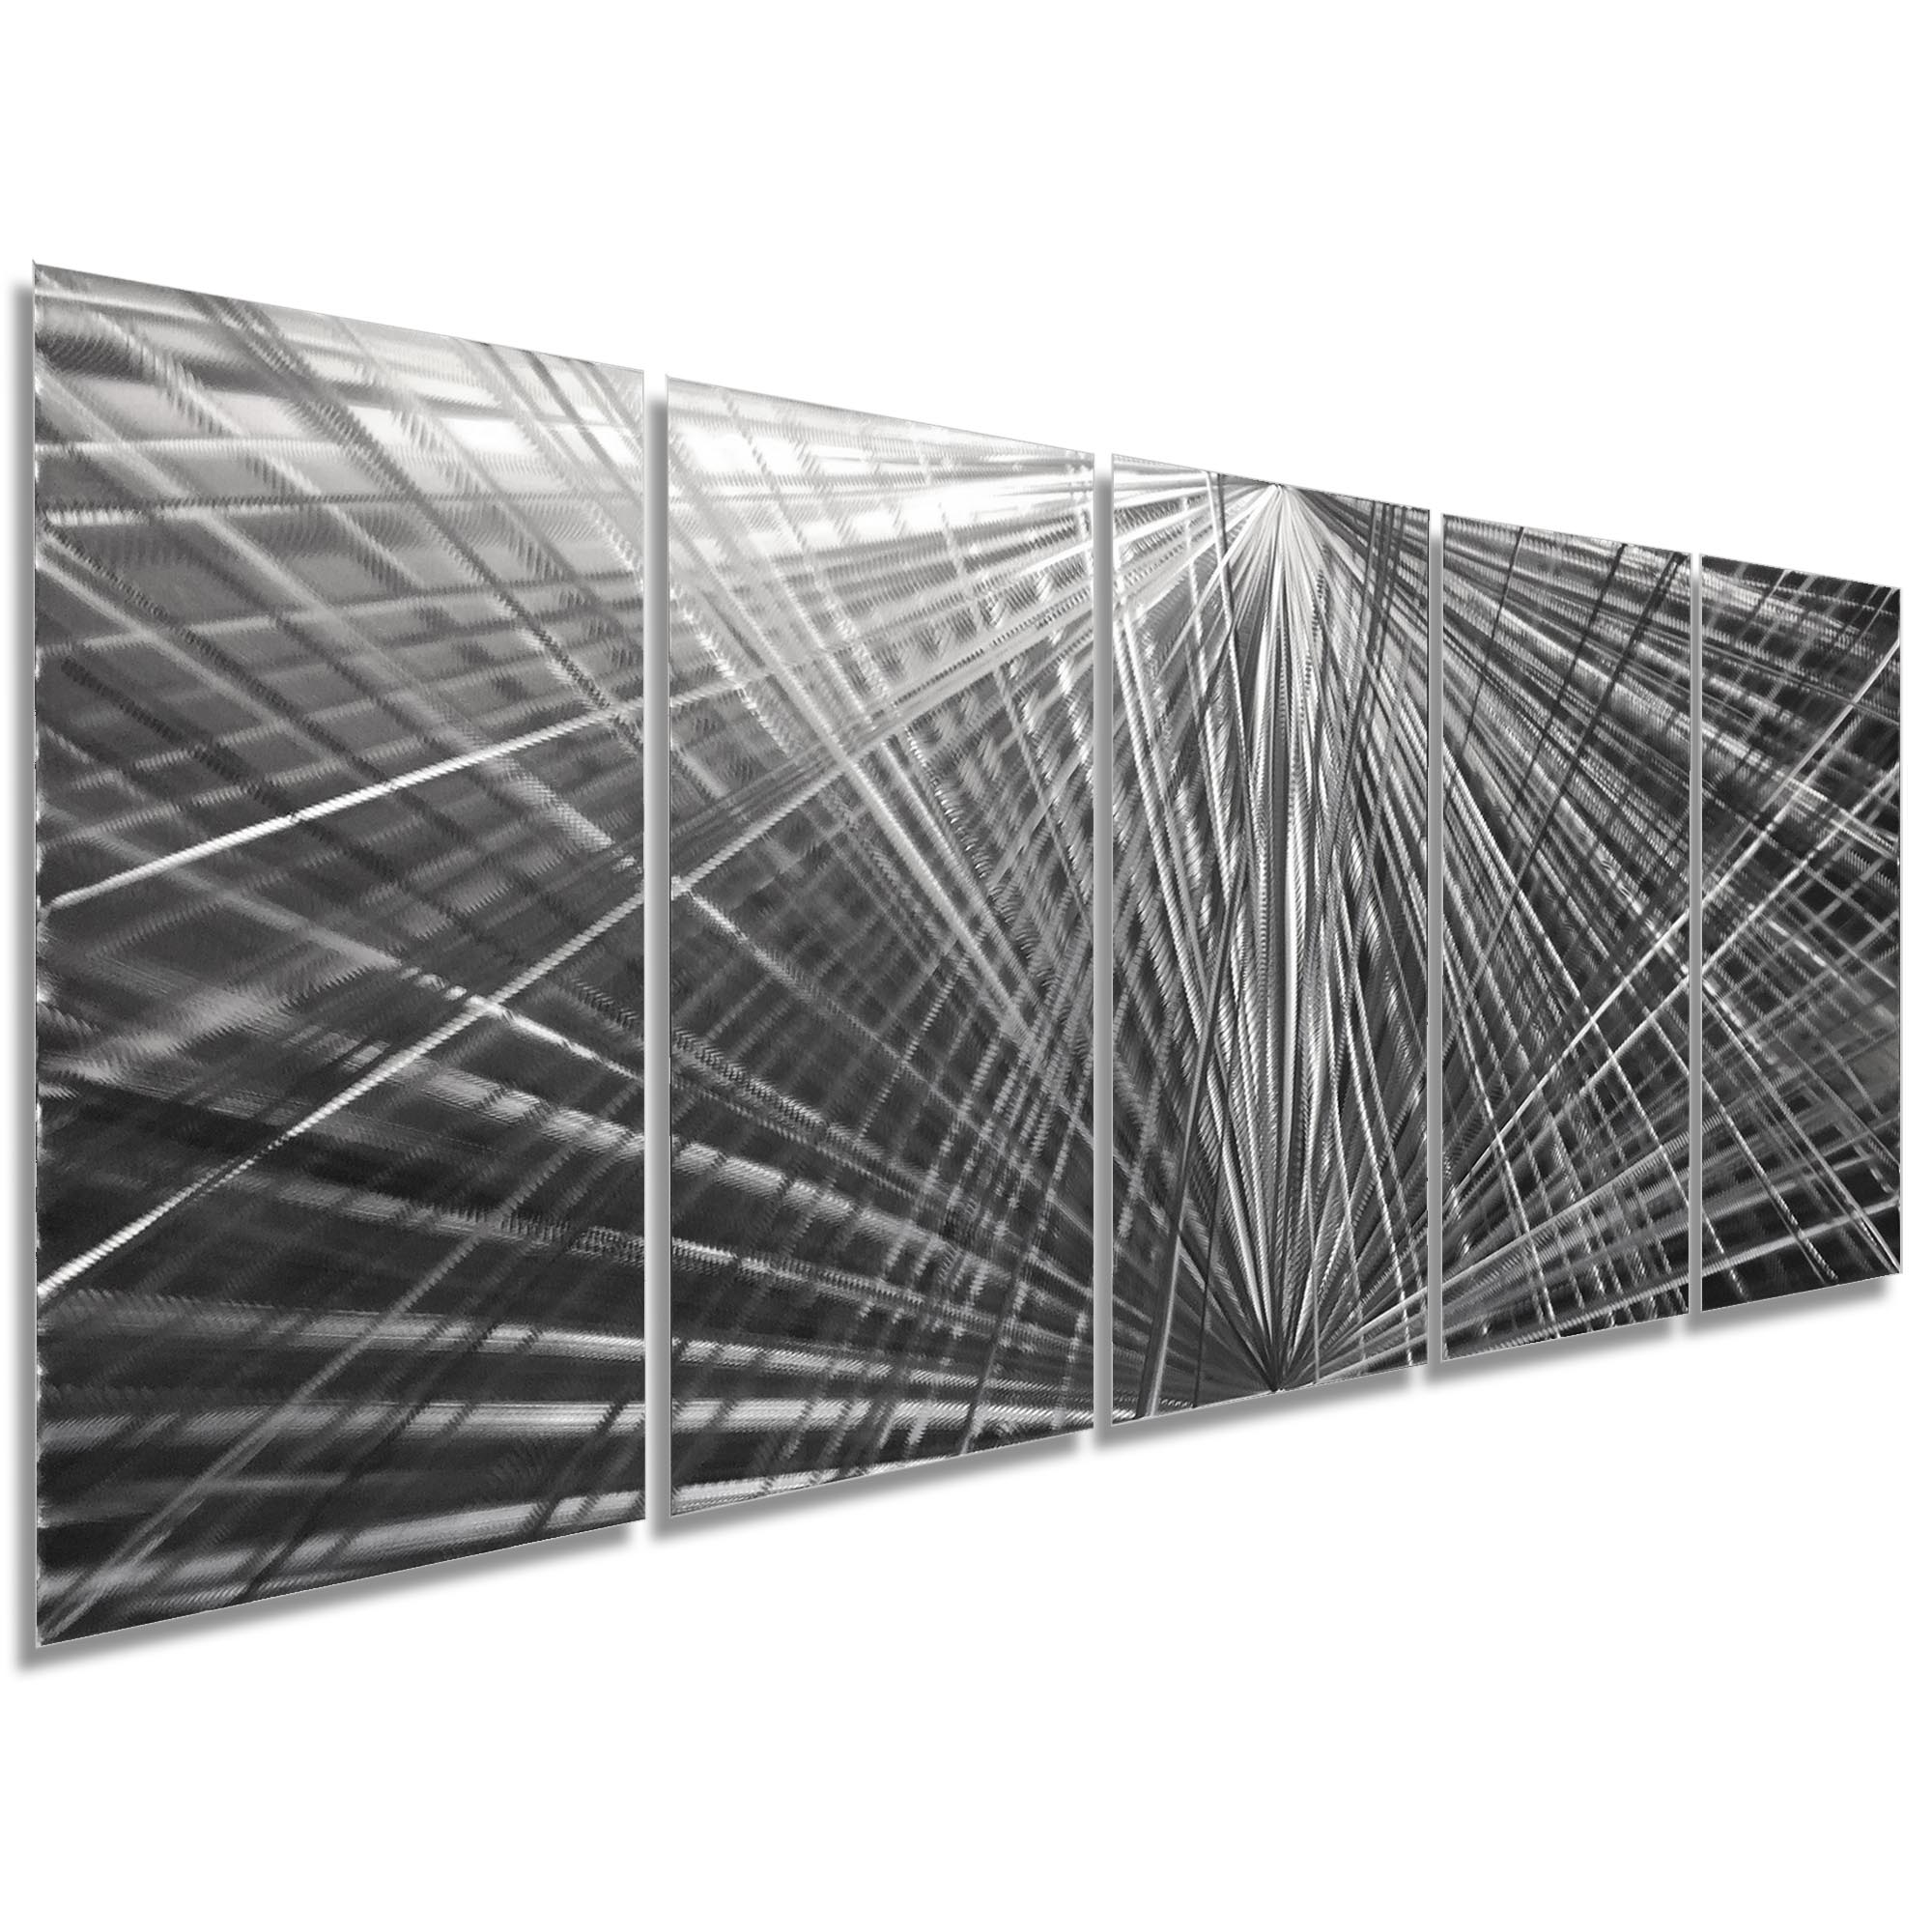 In Harmony 62x24in. Natural Aluminum Abstract Decor - Image 2